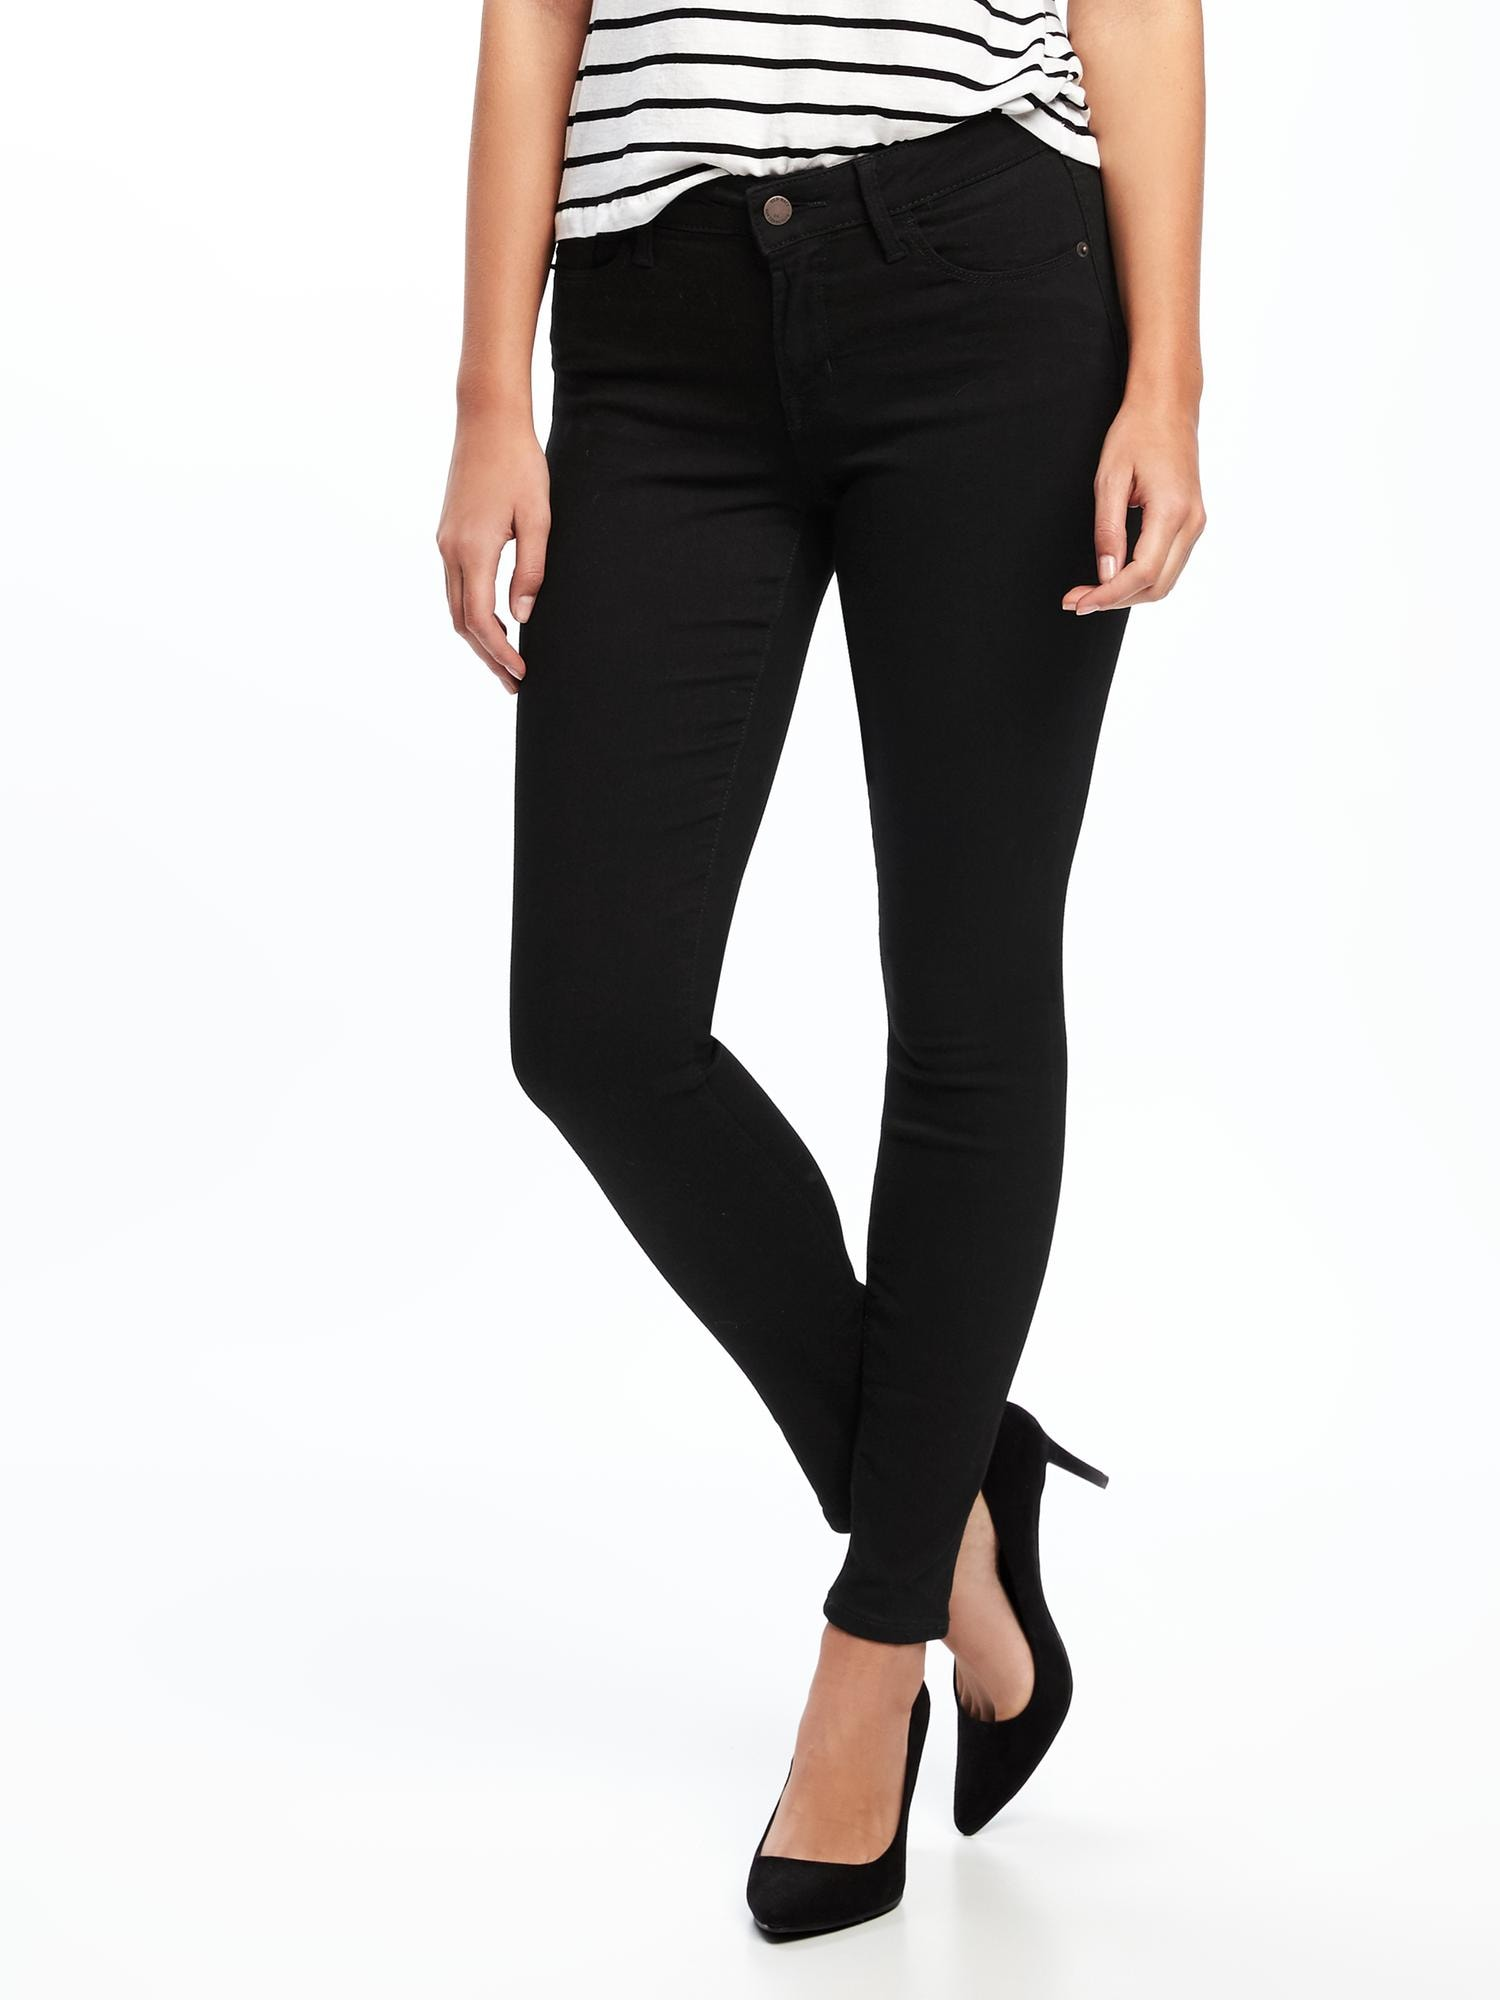 76aa2667252 Mid-Rise Black Rockstar Super Skinny Jeans for Women